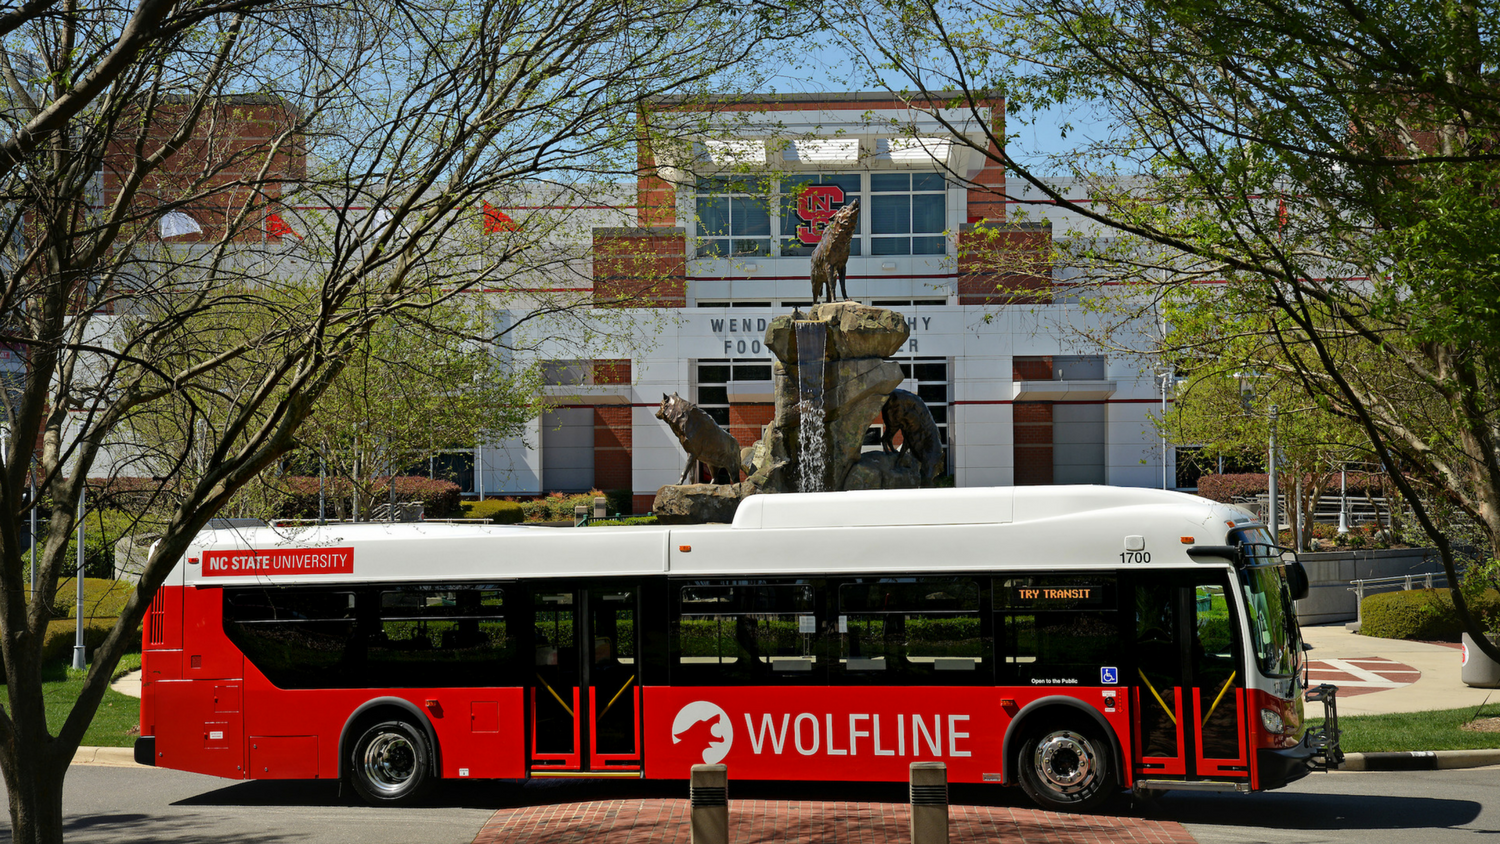 Wolfline bus with Wendell H. Murphy Football Center in background